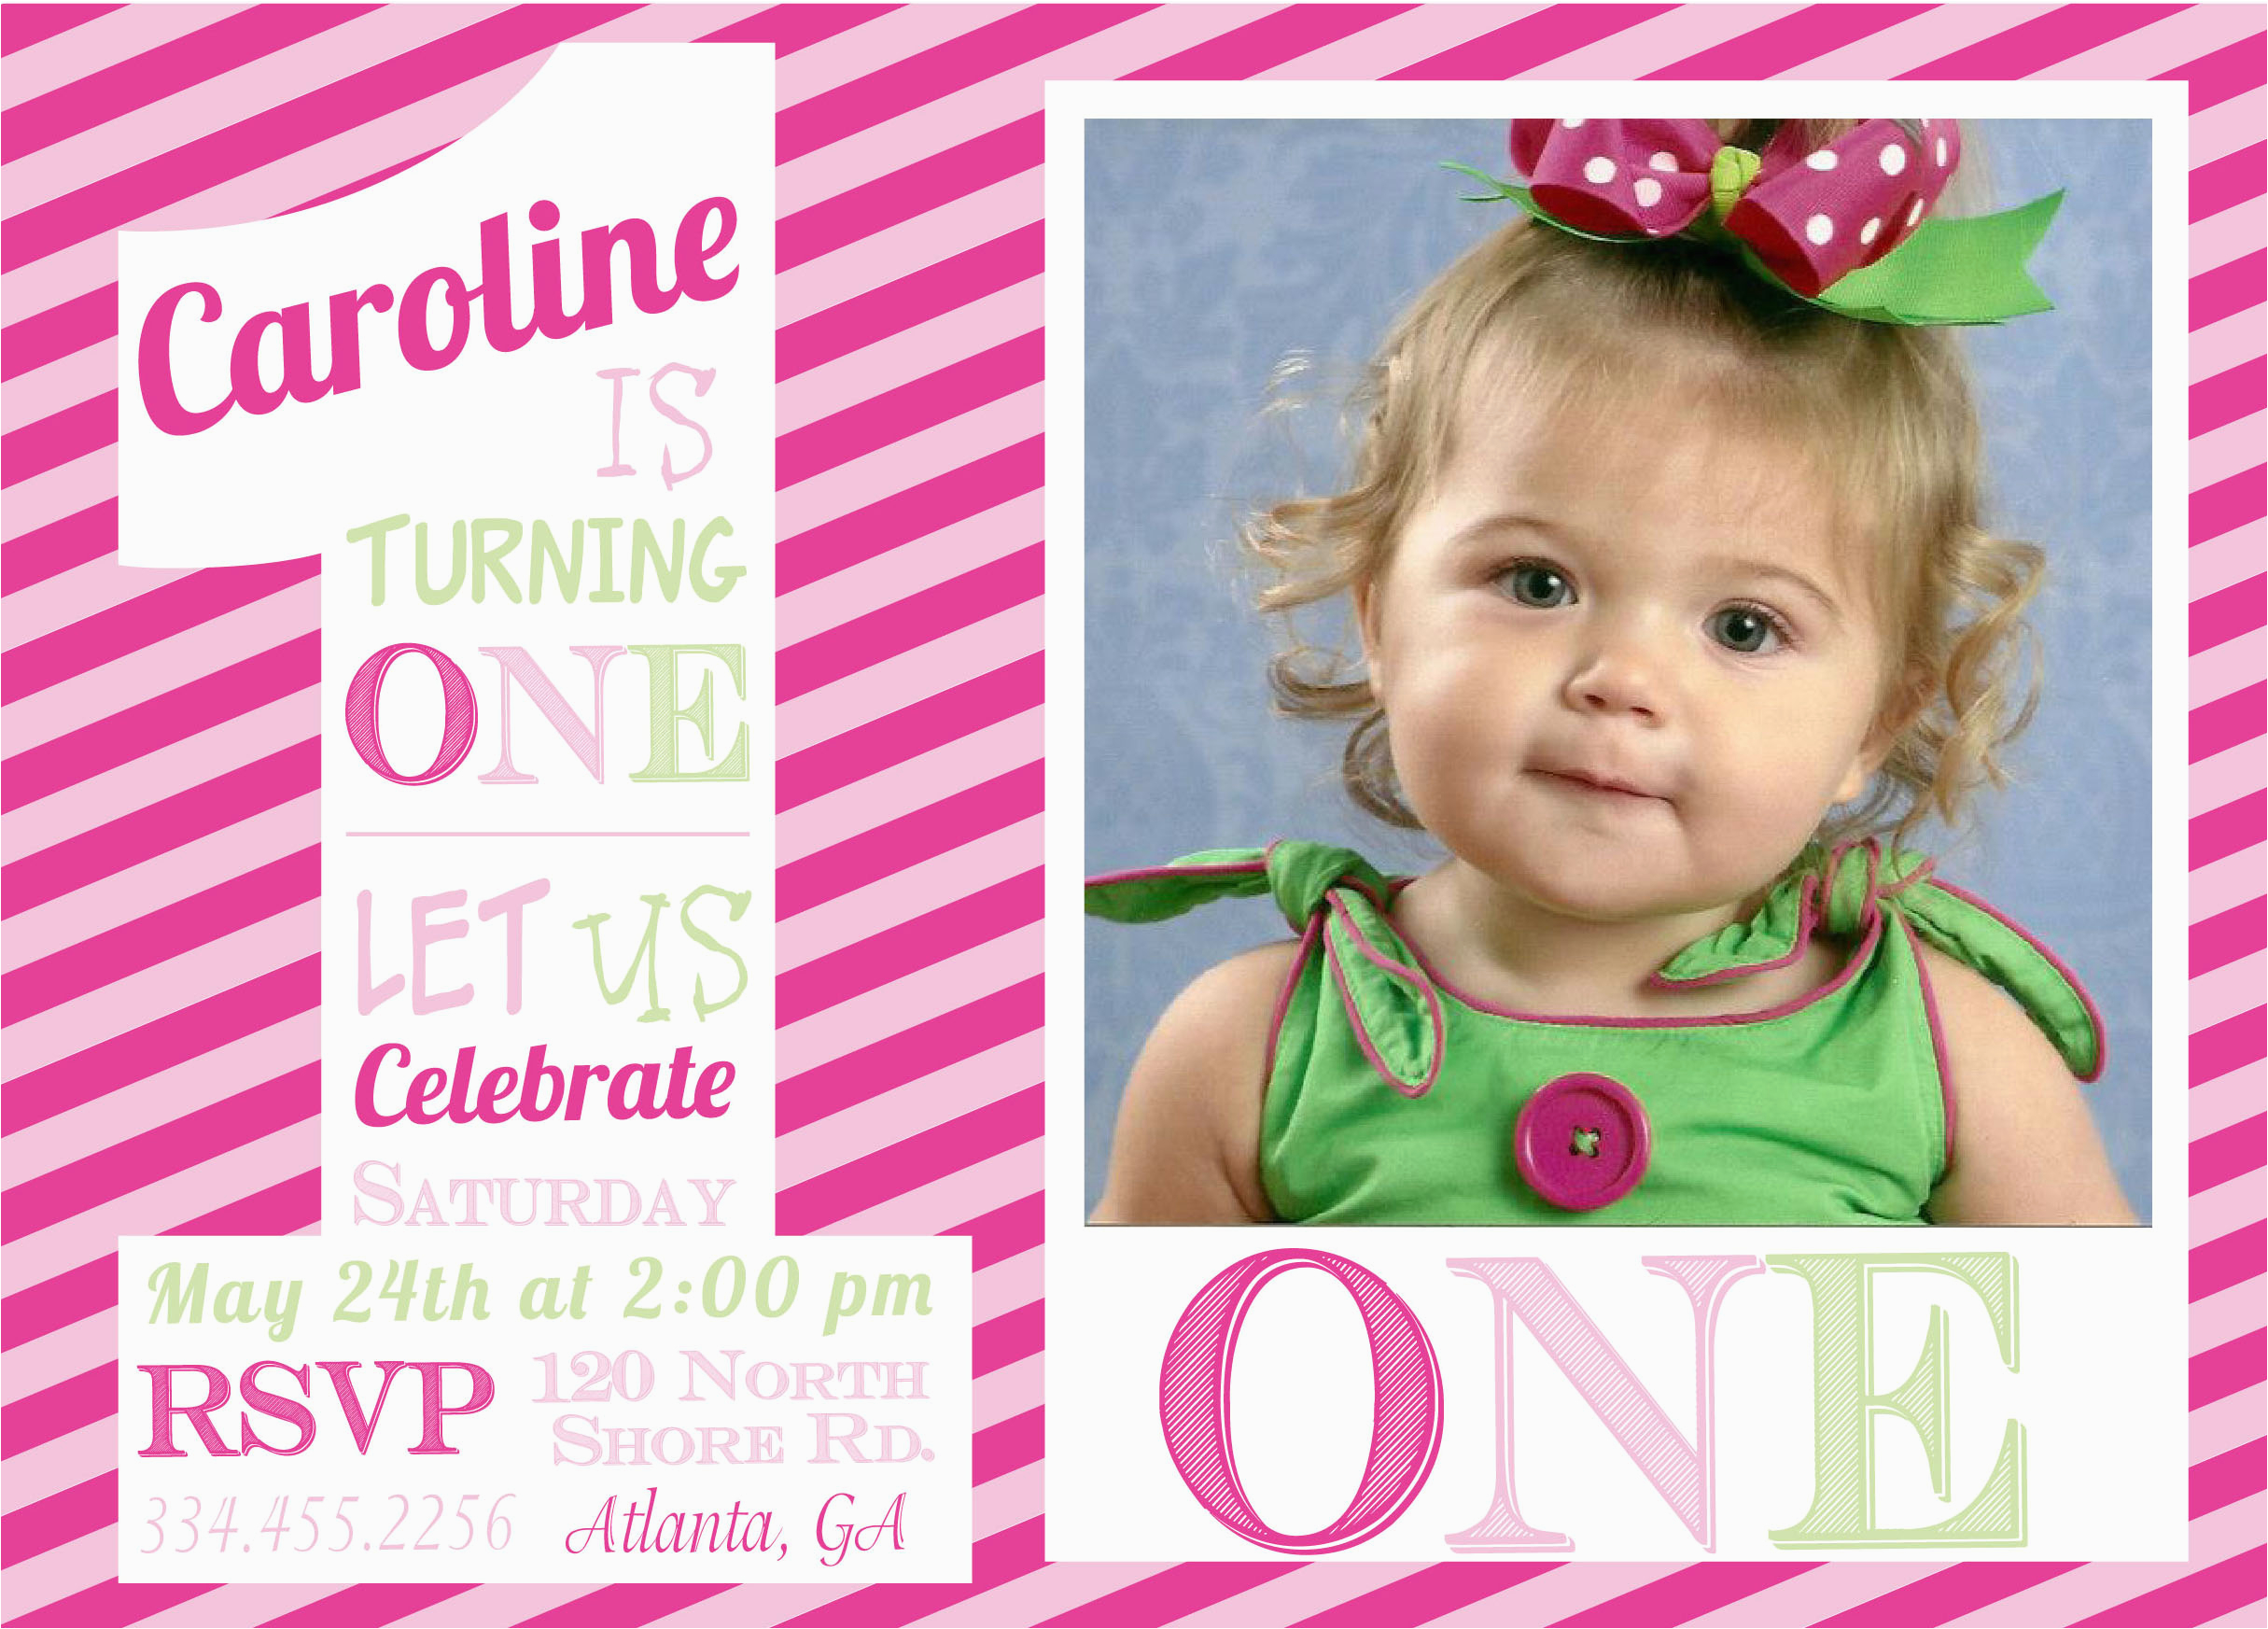 Baby Girl First Birthday Invitation Wording 16th Invitations Templates Ideas 1st